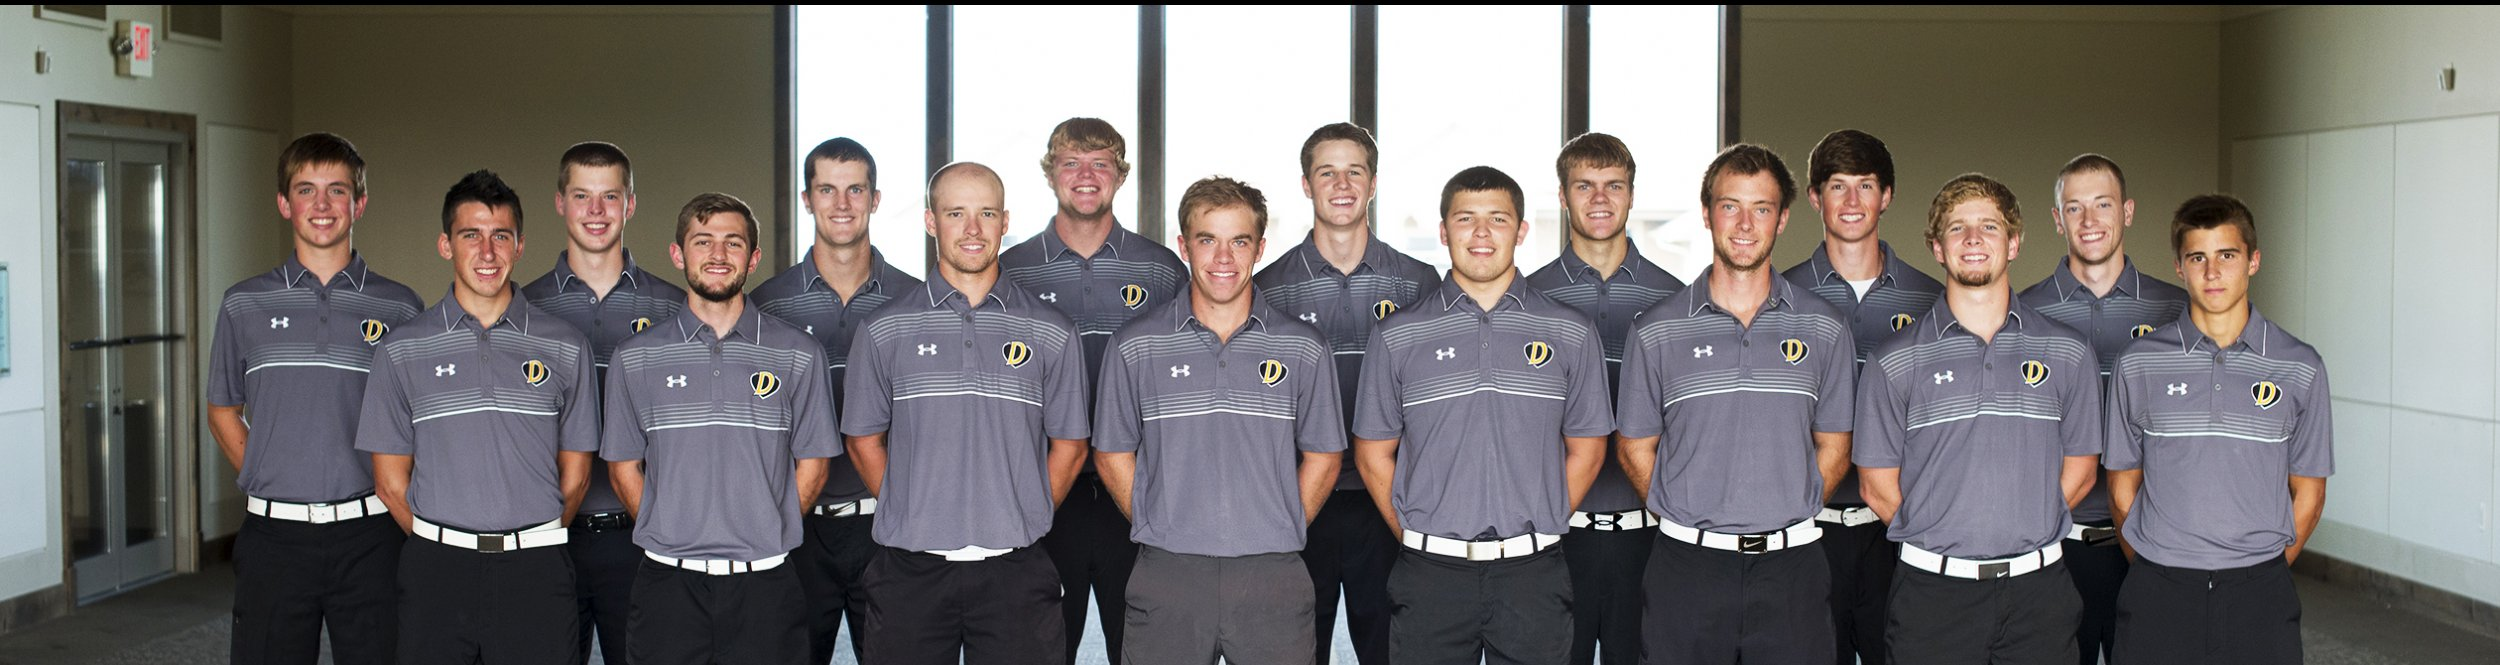 The men's golf team poses for a team photograph.